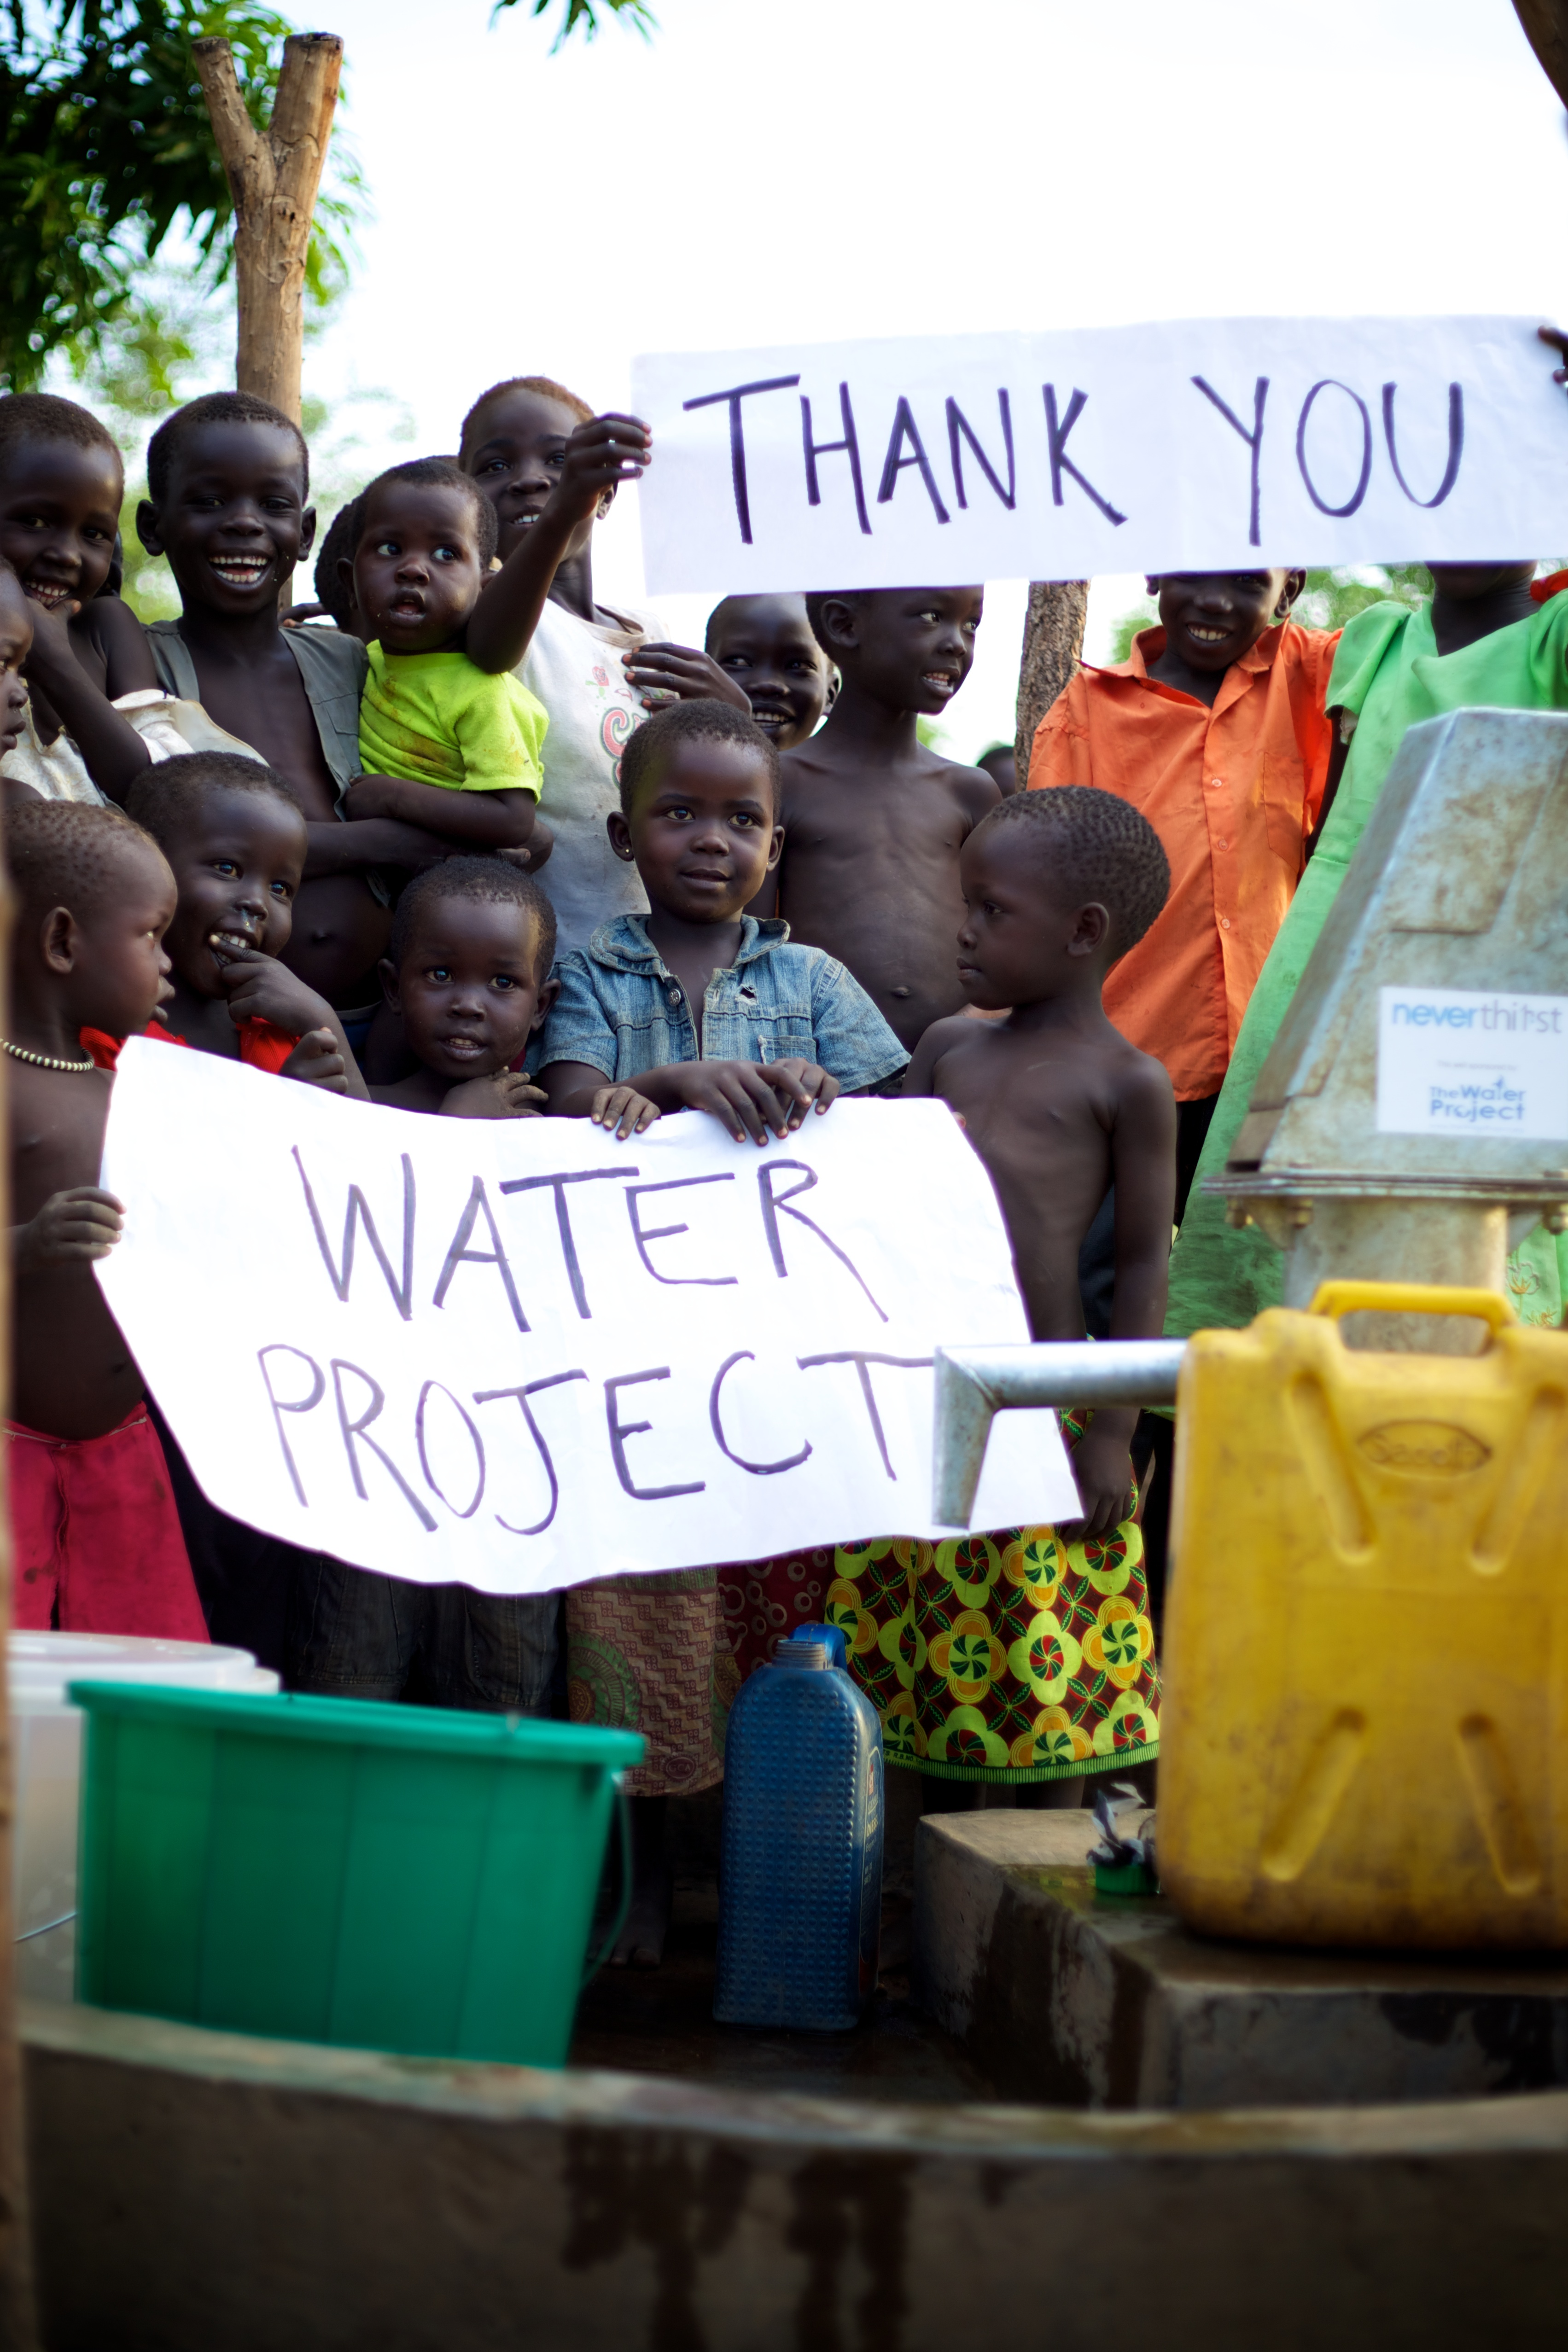 sudan no clean water 2015-6-1  'lost boy' finds water for south sudan  more than a third of south sudan's 11 million people have no ready access to fresh water,  having clean.